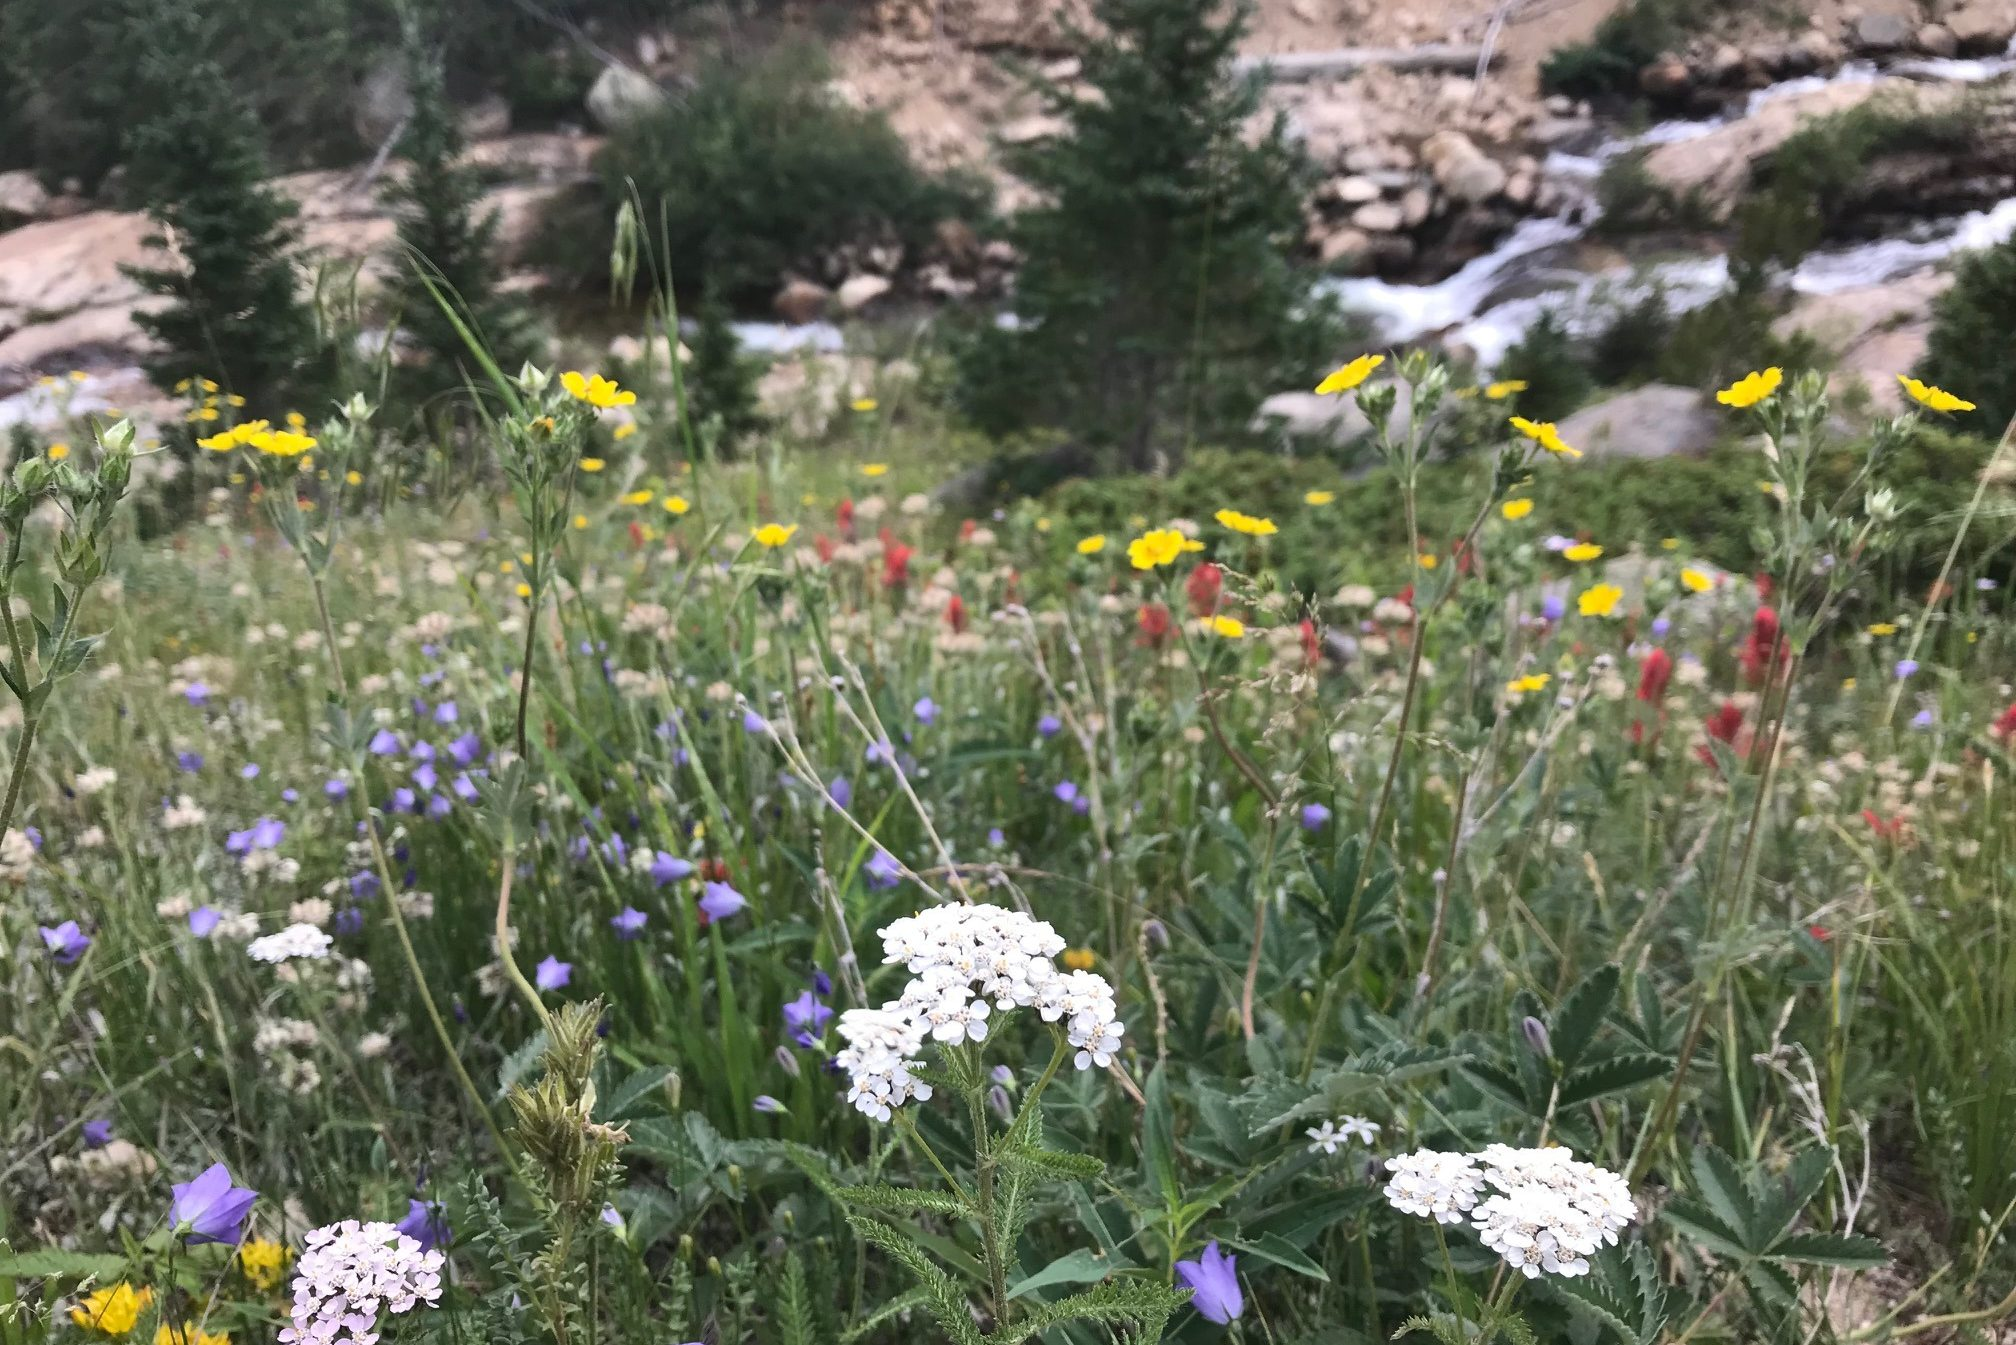 A field of flowers in front of a small stream.